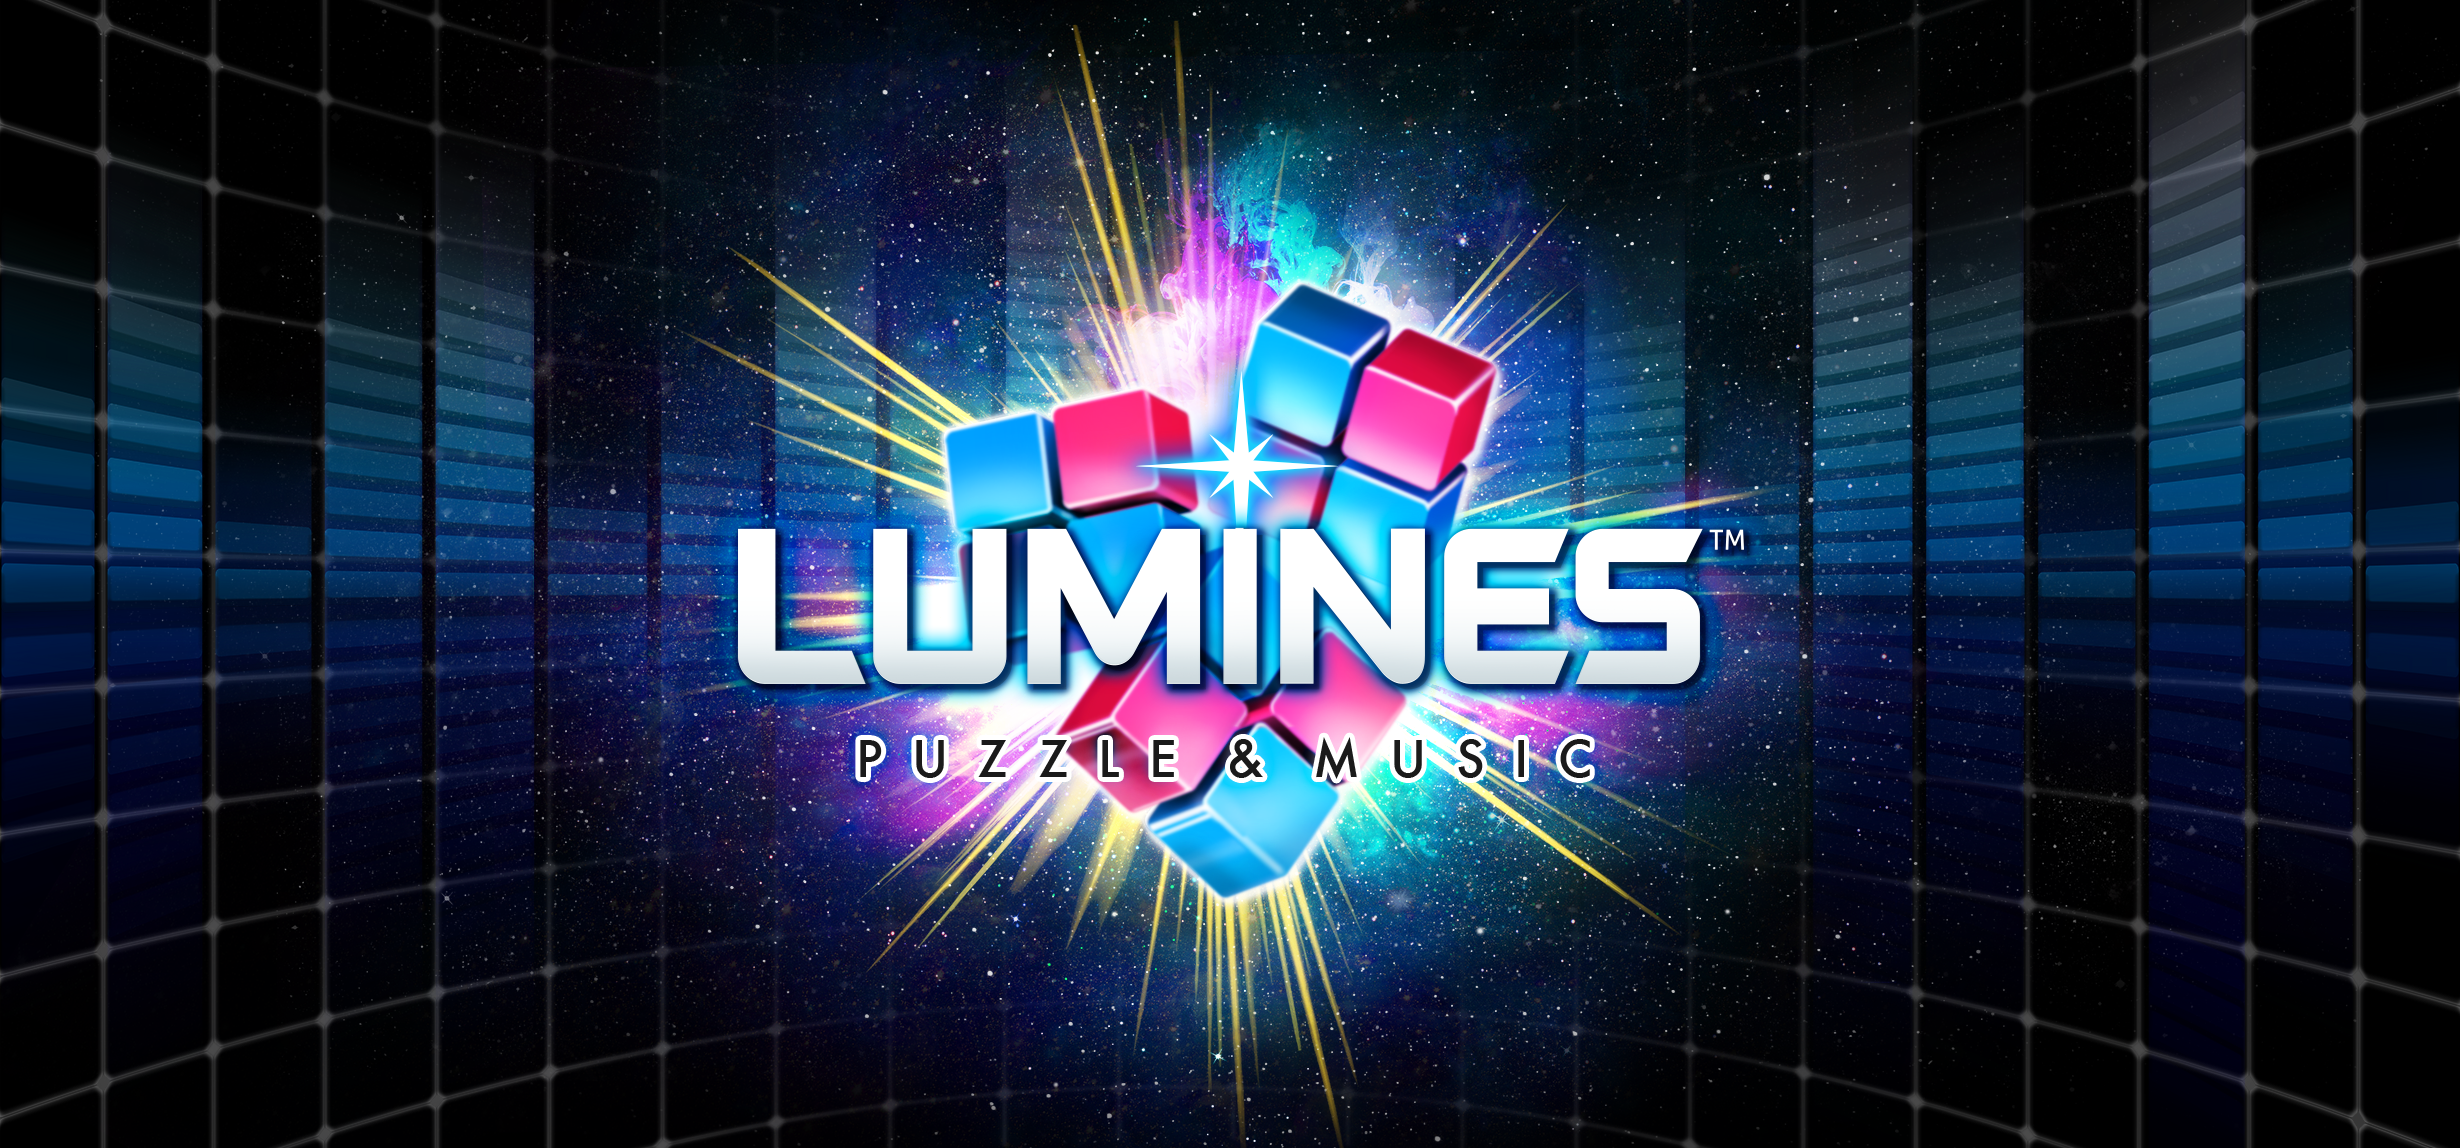 071316_Mobcast_Lumines_Key Art_A